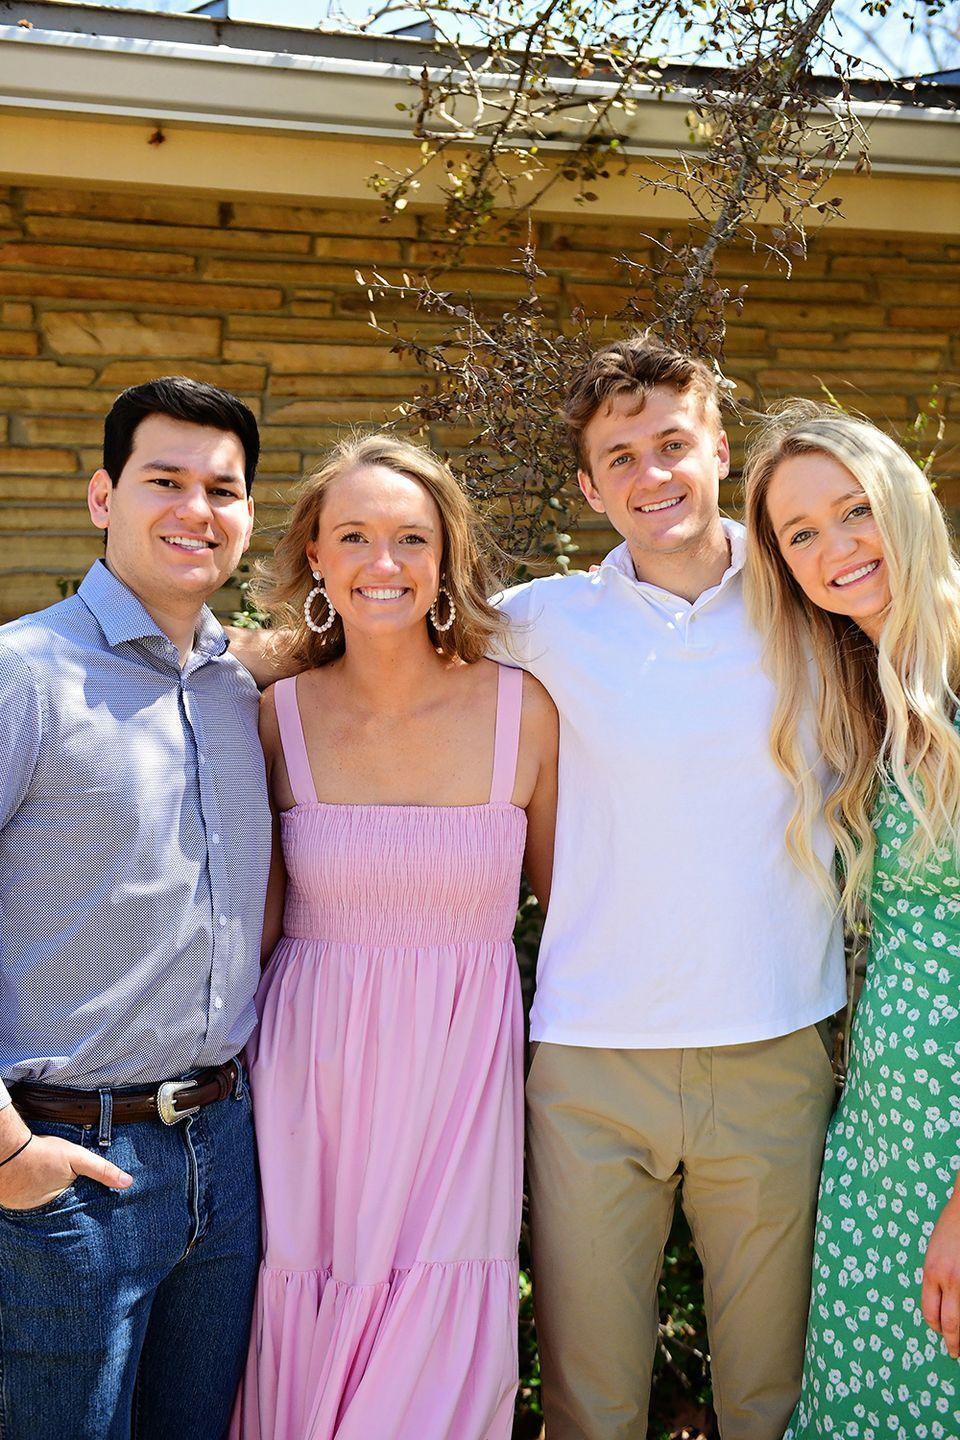 """<p>These four kids saved my bacon when the Covid shutdown happened. They agreed to step in with iPhones and <a href=""""https://www.thepioneerwoman.com/ree-drummond-life/a35687100/the-pioneer-woman-show-filming-drummond-family/"""" rel=""""nofollow noopener"""" target=""""_blank"""" data-ylk=""""slk:film my Food Network show"""" class=""""link rapid-noclick-resp"""">film my Food Network show</a>...and what we thought would be a short run of five or six episodes has turned into over fifty (!)...with more on the schedule. With things getting better in the world, I know my crew from England will be able to come back sooner rather than later...but I'm so grateful for these kids for helping out their mom/mother-in-law-to-be/aunt!</p>"""